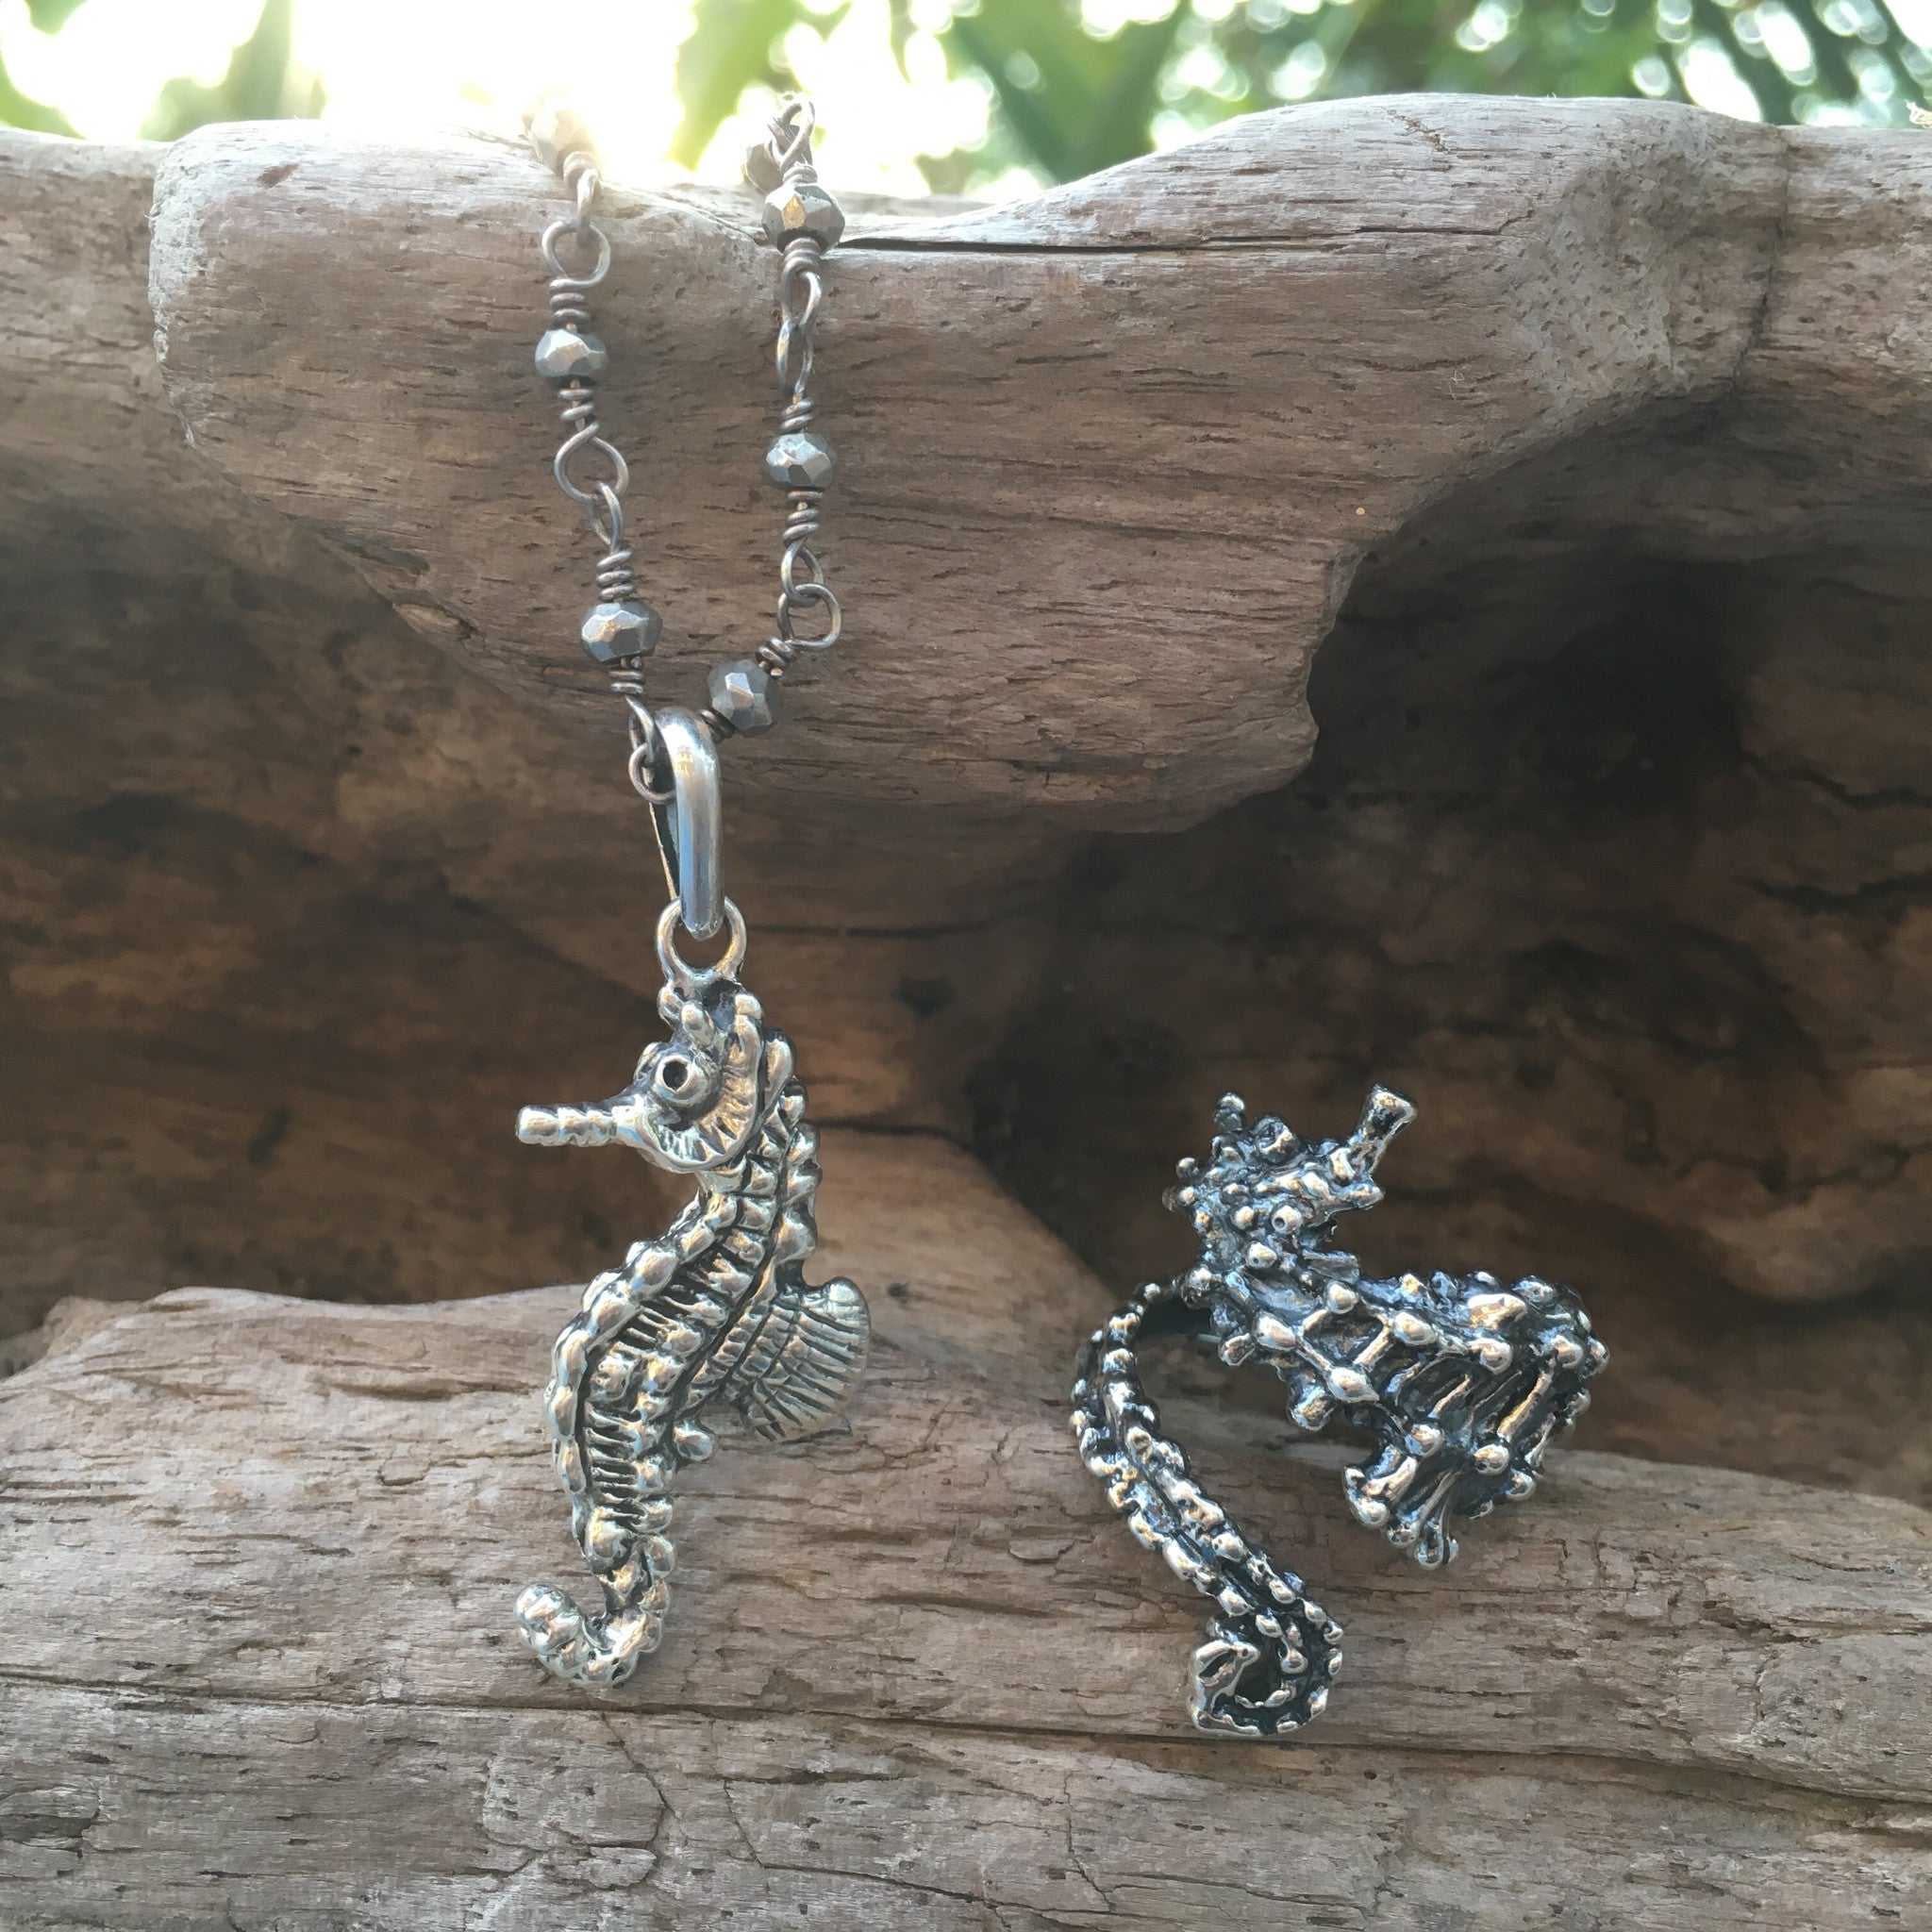 Pendant Sea Dragon-Jenstones Jewelry